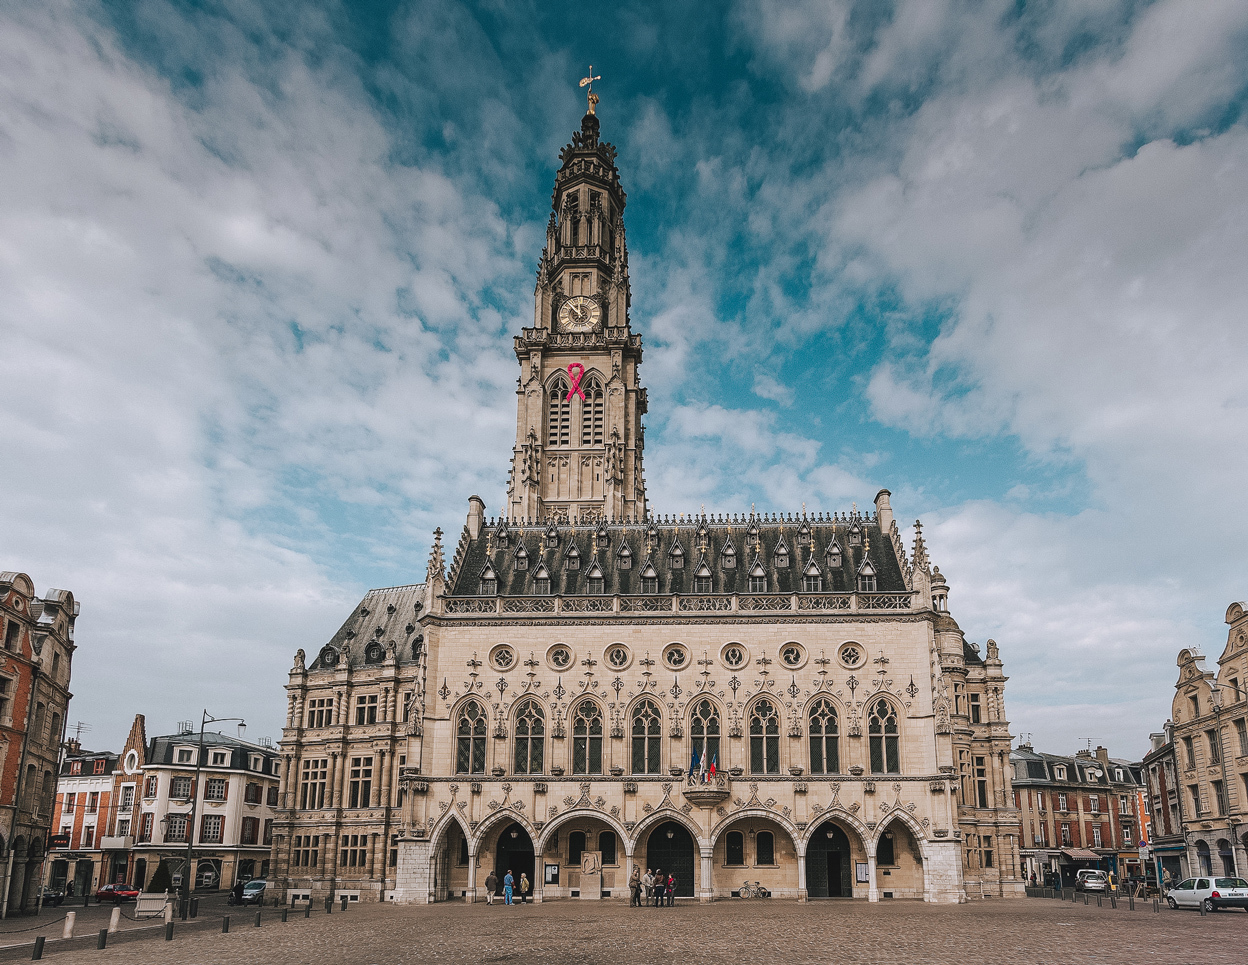 gallery_18-arras-Town-Hall-2.jpg